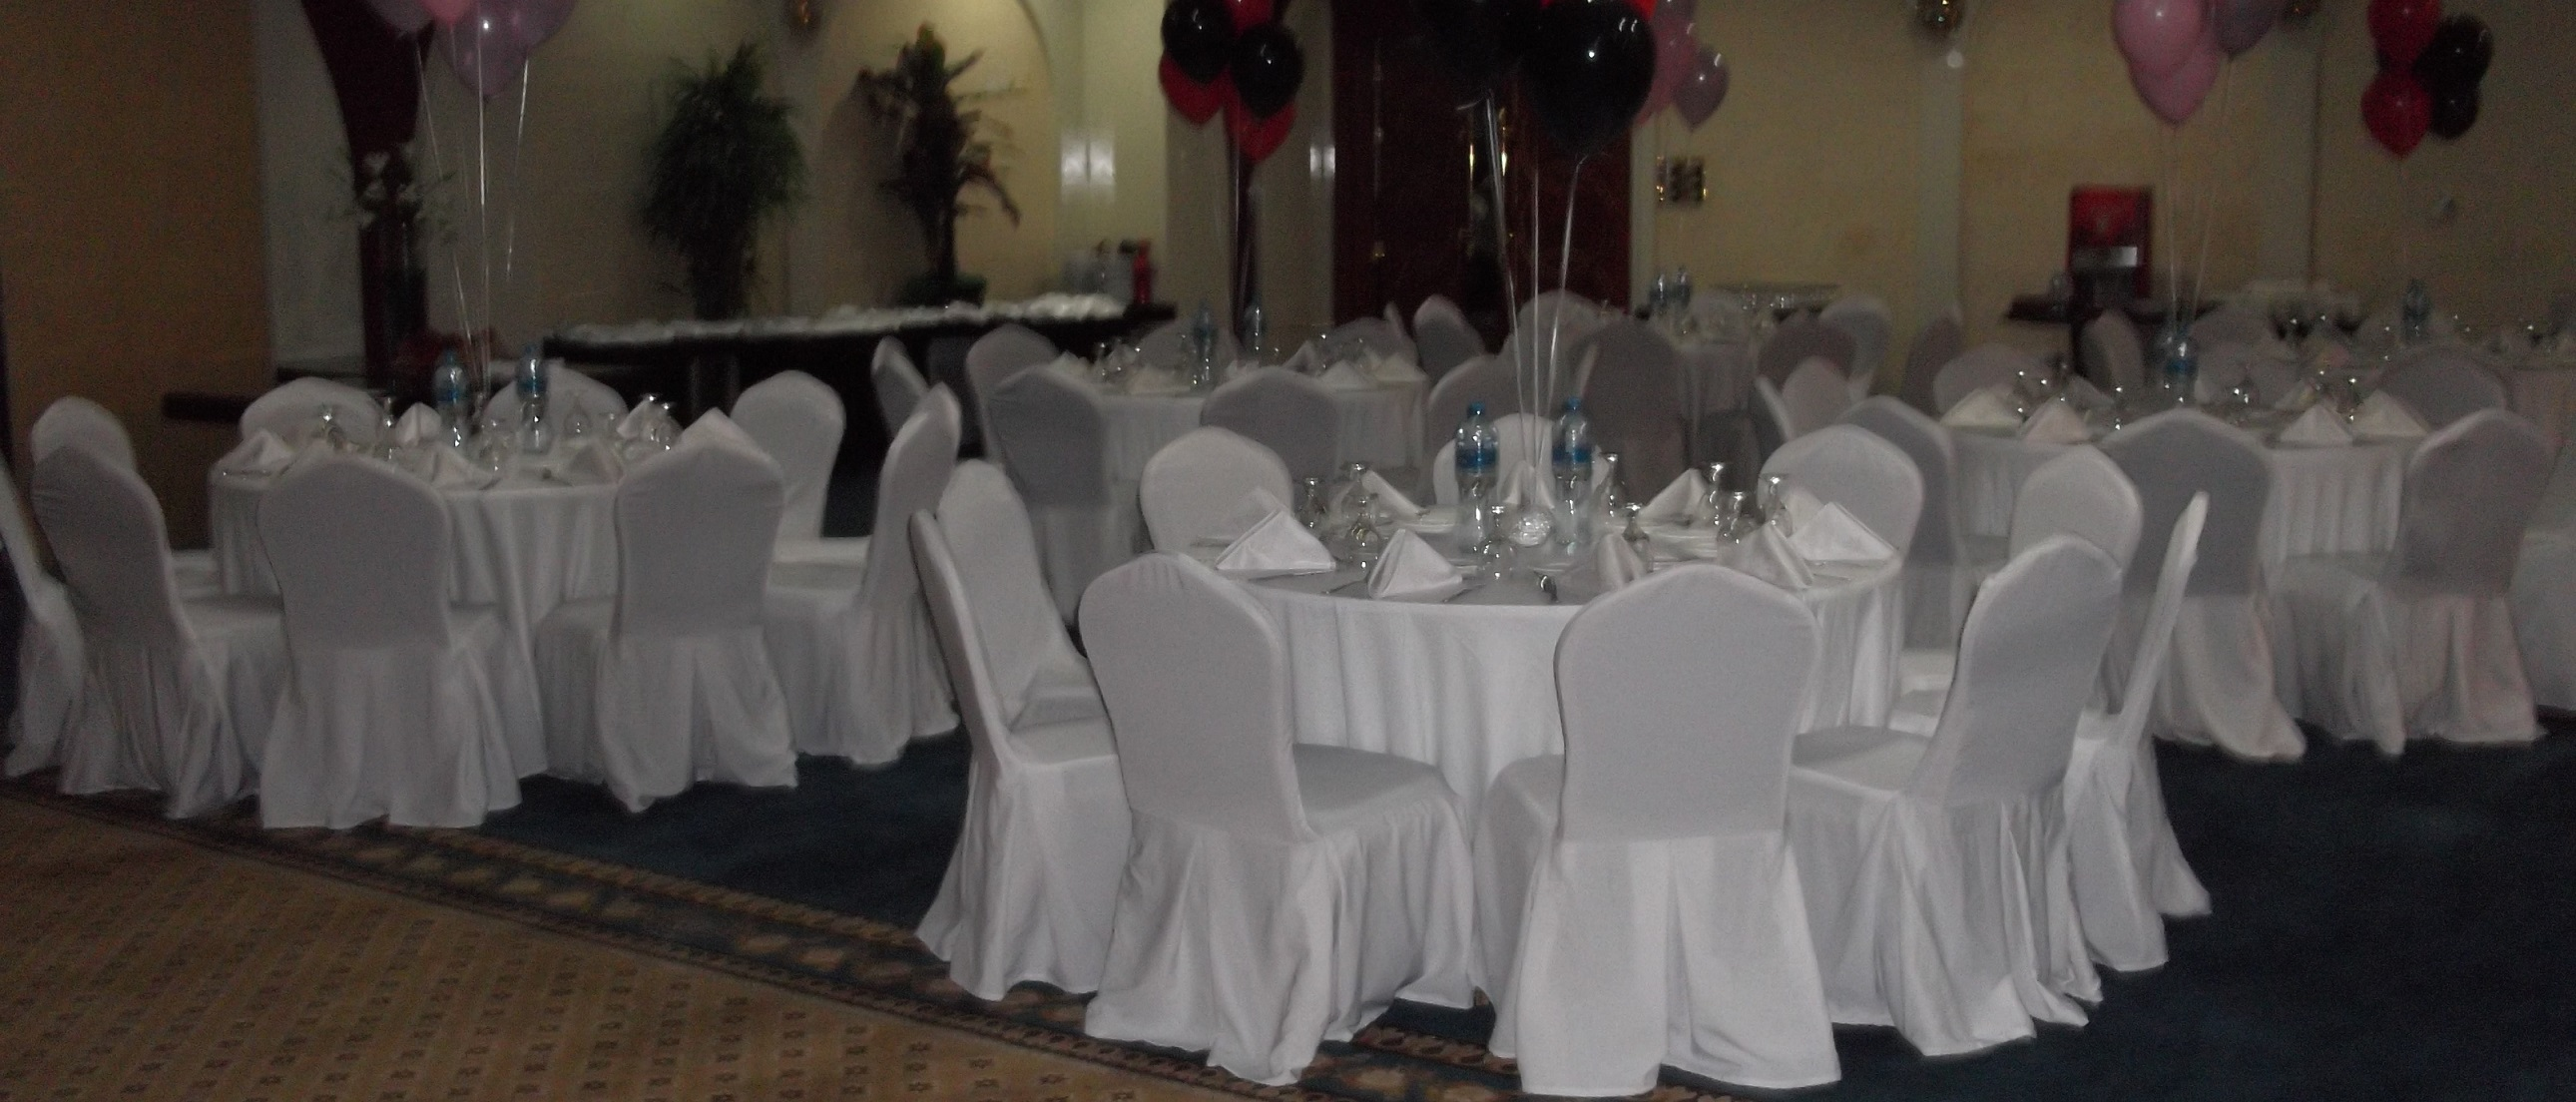 Where Can I Rent Tables And Chairs Adults And Kids Furniture Rental Hire Party Tables Chairs Rental